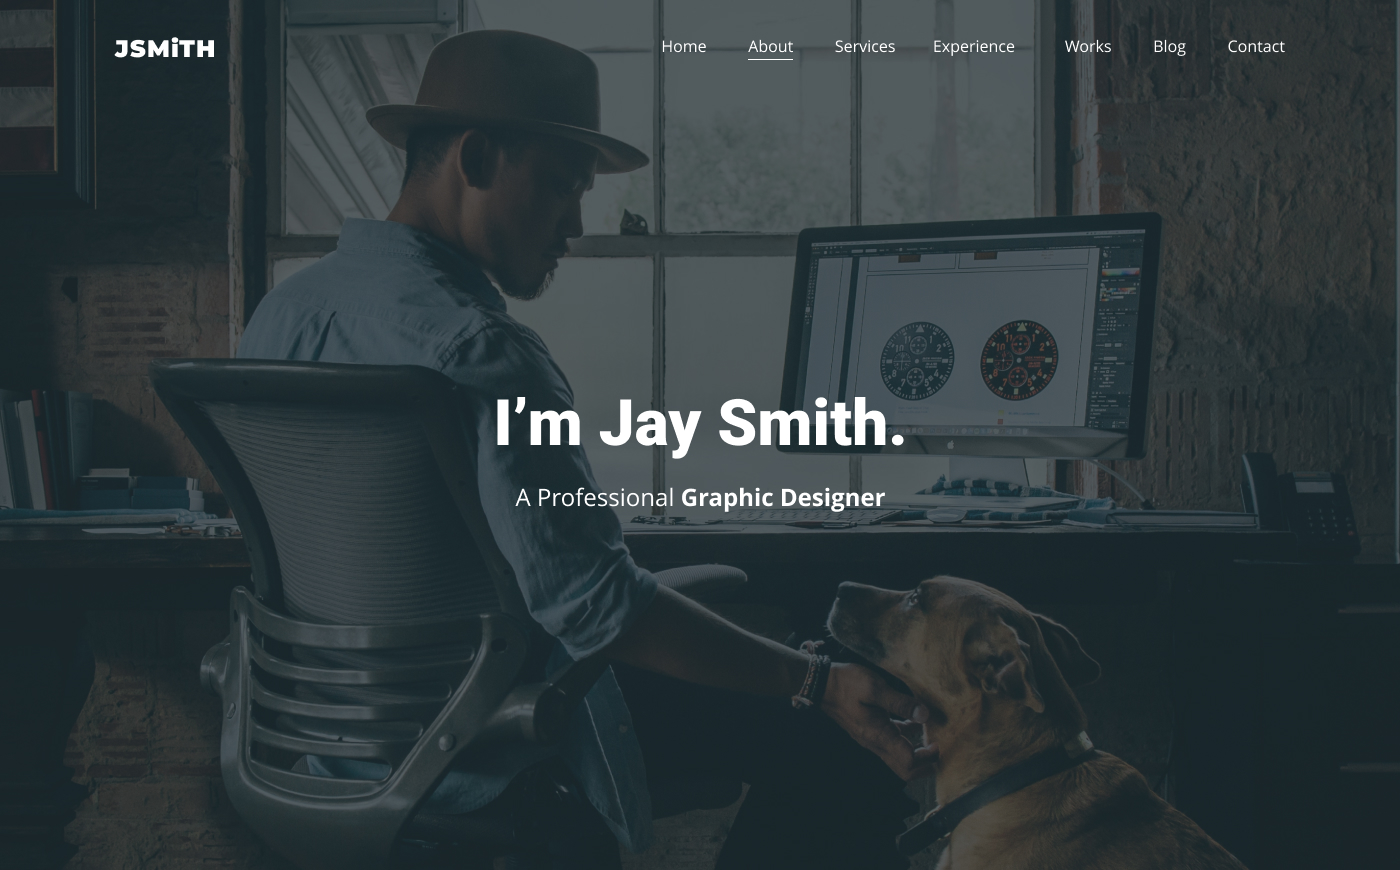 JSMiTH Fully Responsive Bootstrap 4 Personal Website Template